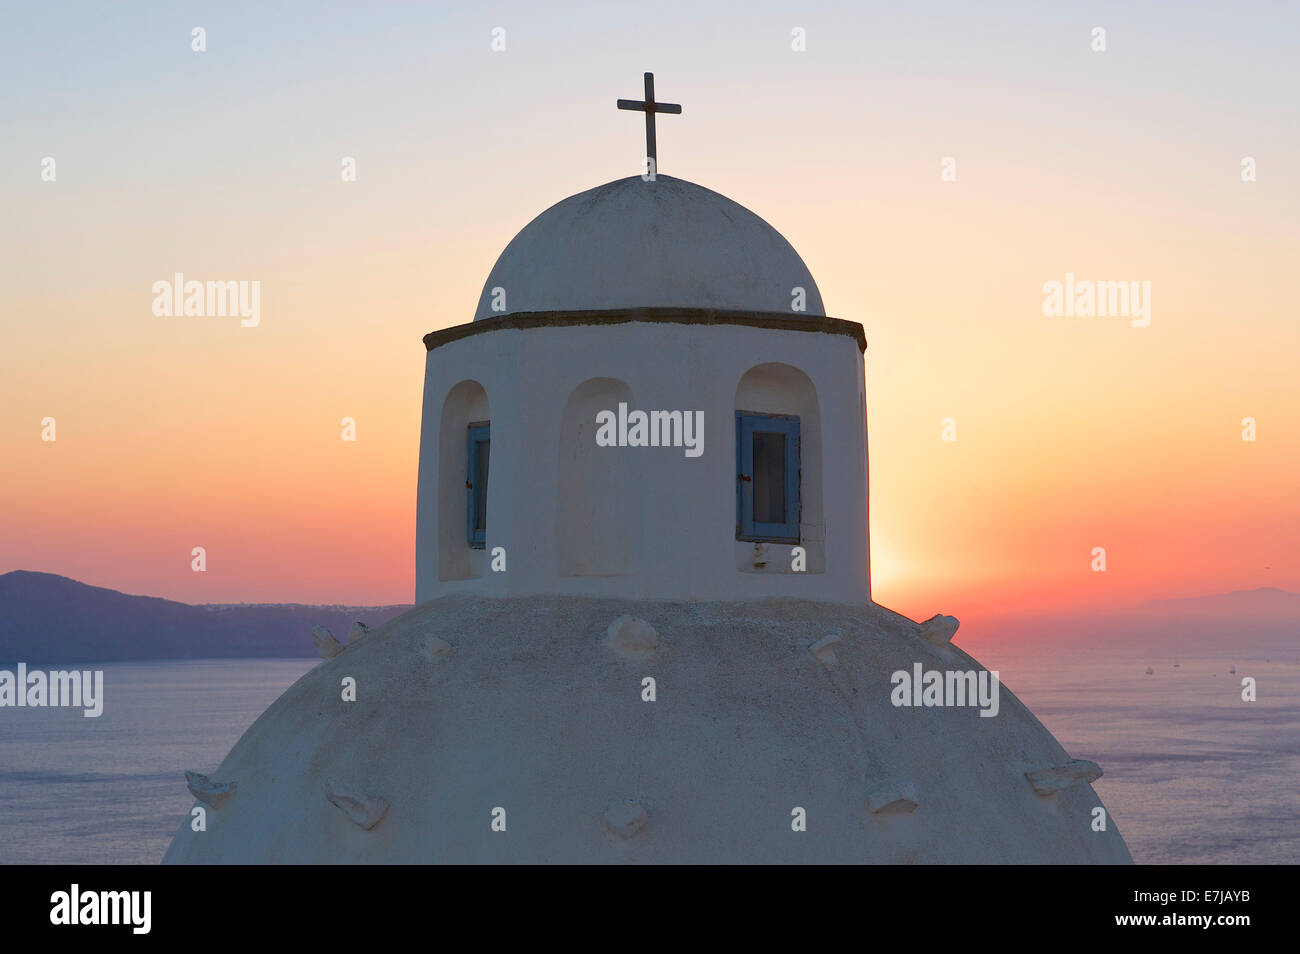 Church dome at sunset, Thira, Santorini, Cyclades, Greece - Stock Image